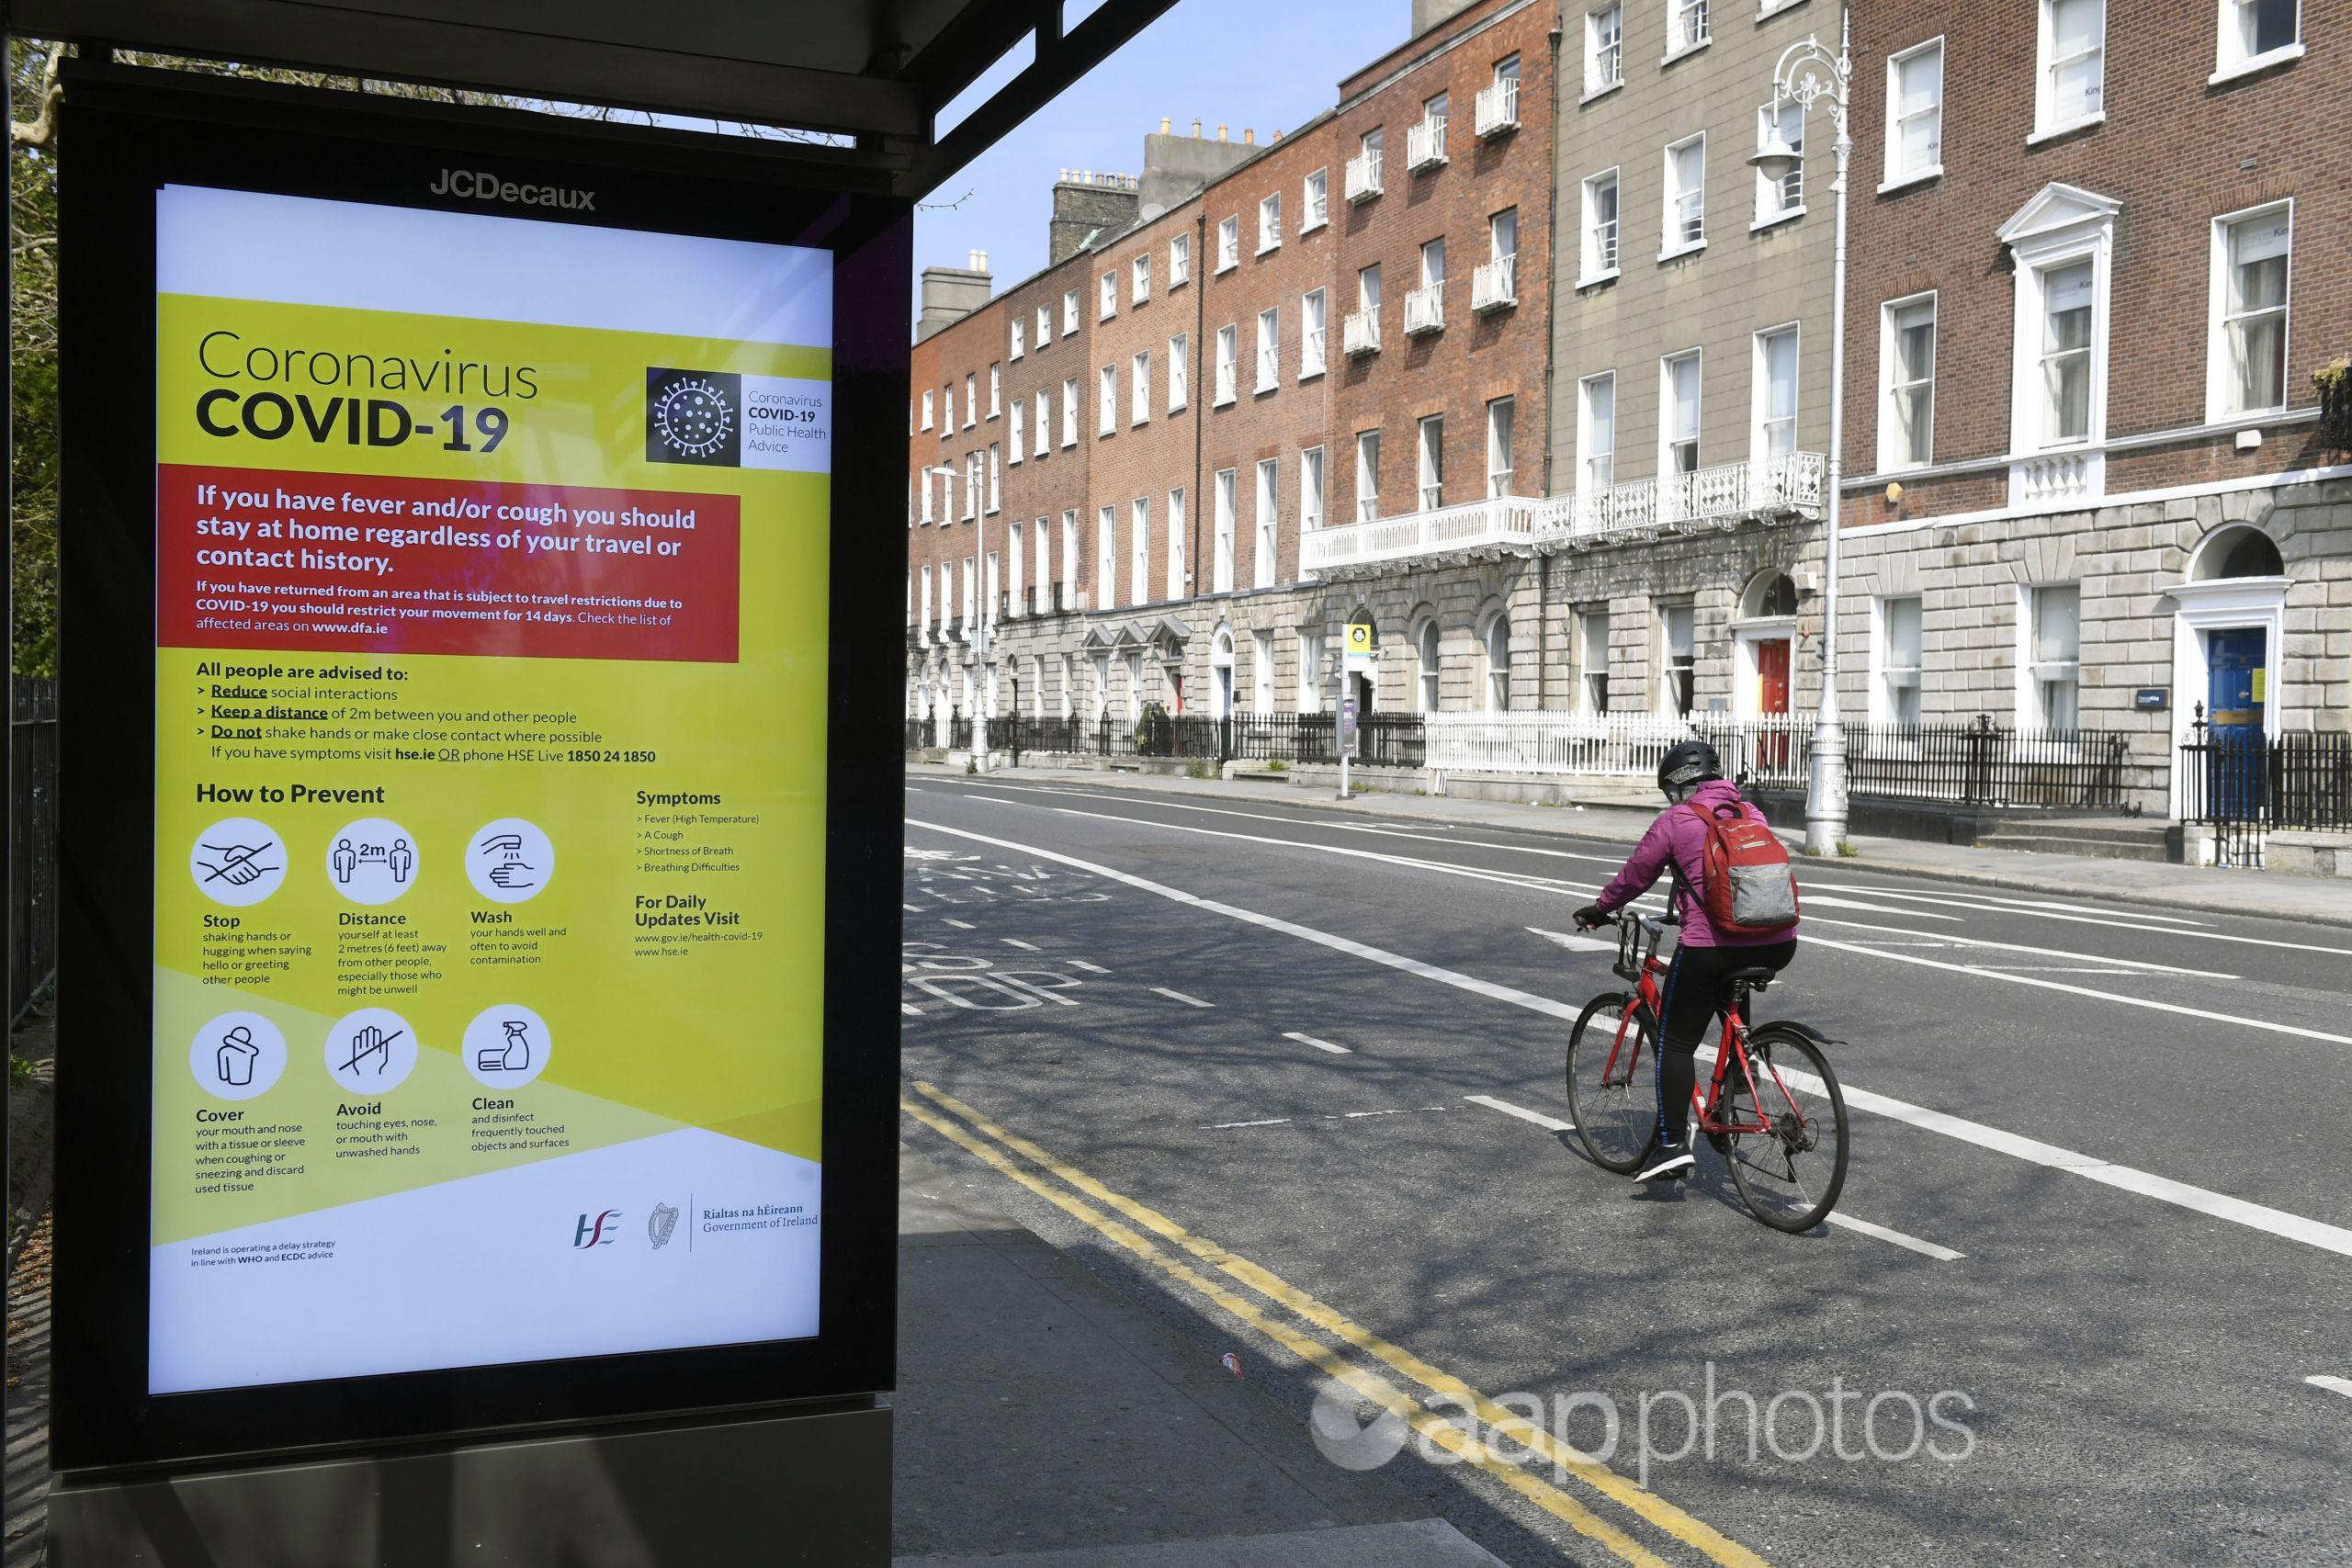 A cyclist passes a bus stop with a COVID-19 health warning in Dublin.